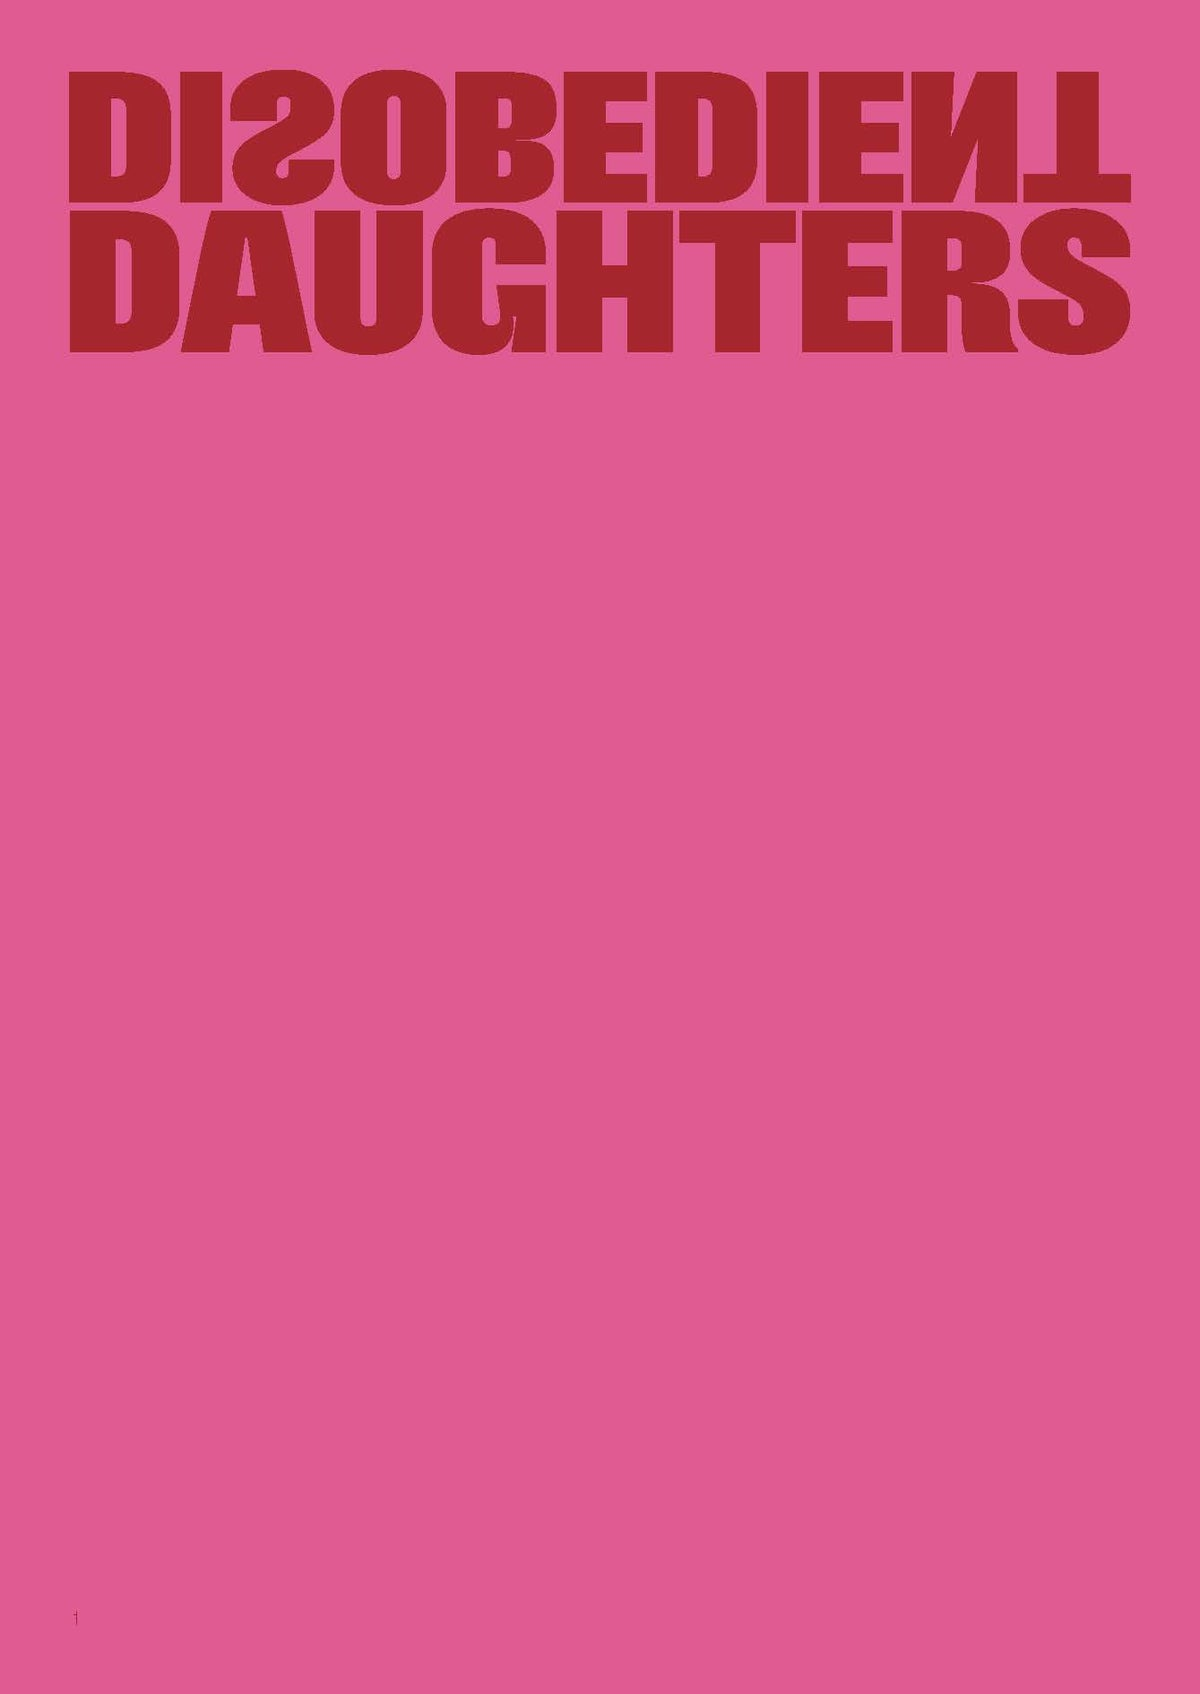 Image of Disobedient Daughters